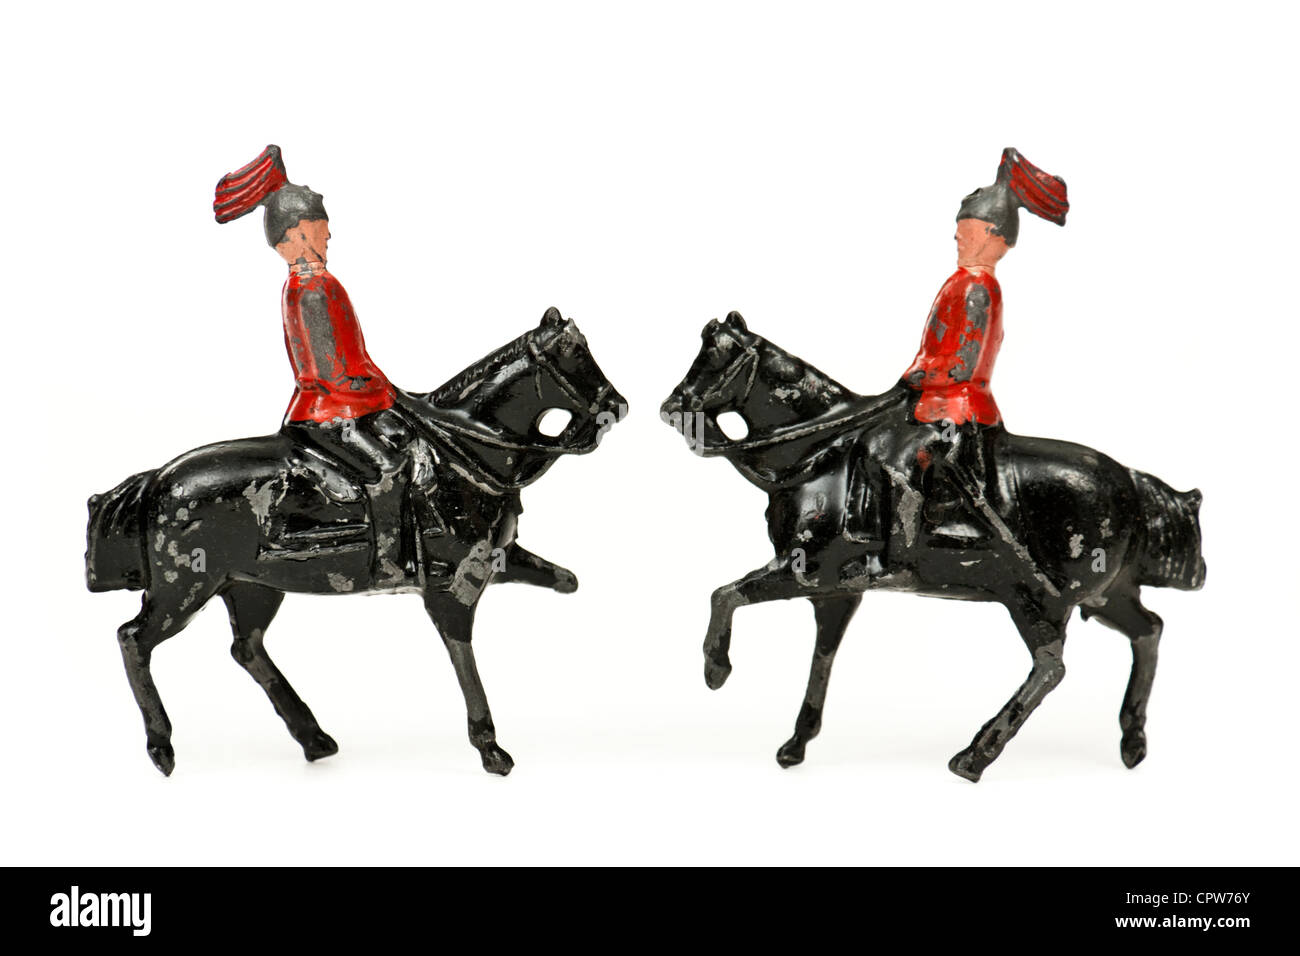 Pair of vintage lead toy soldiers on horseback - Stock Image